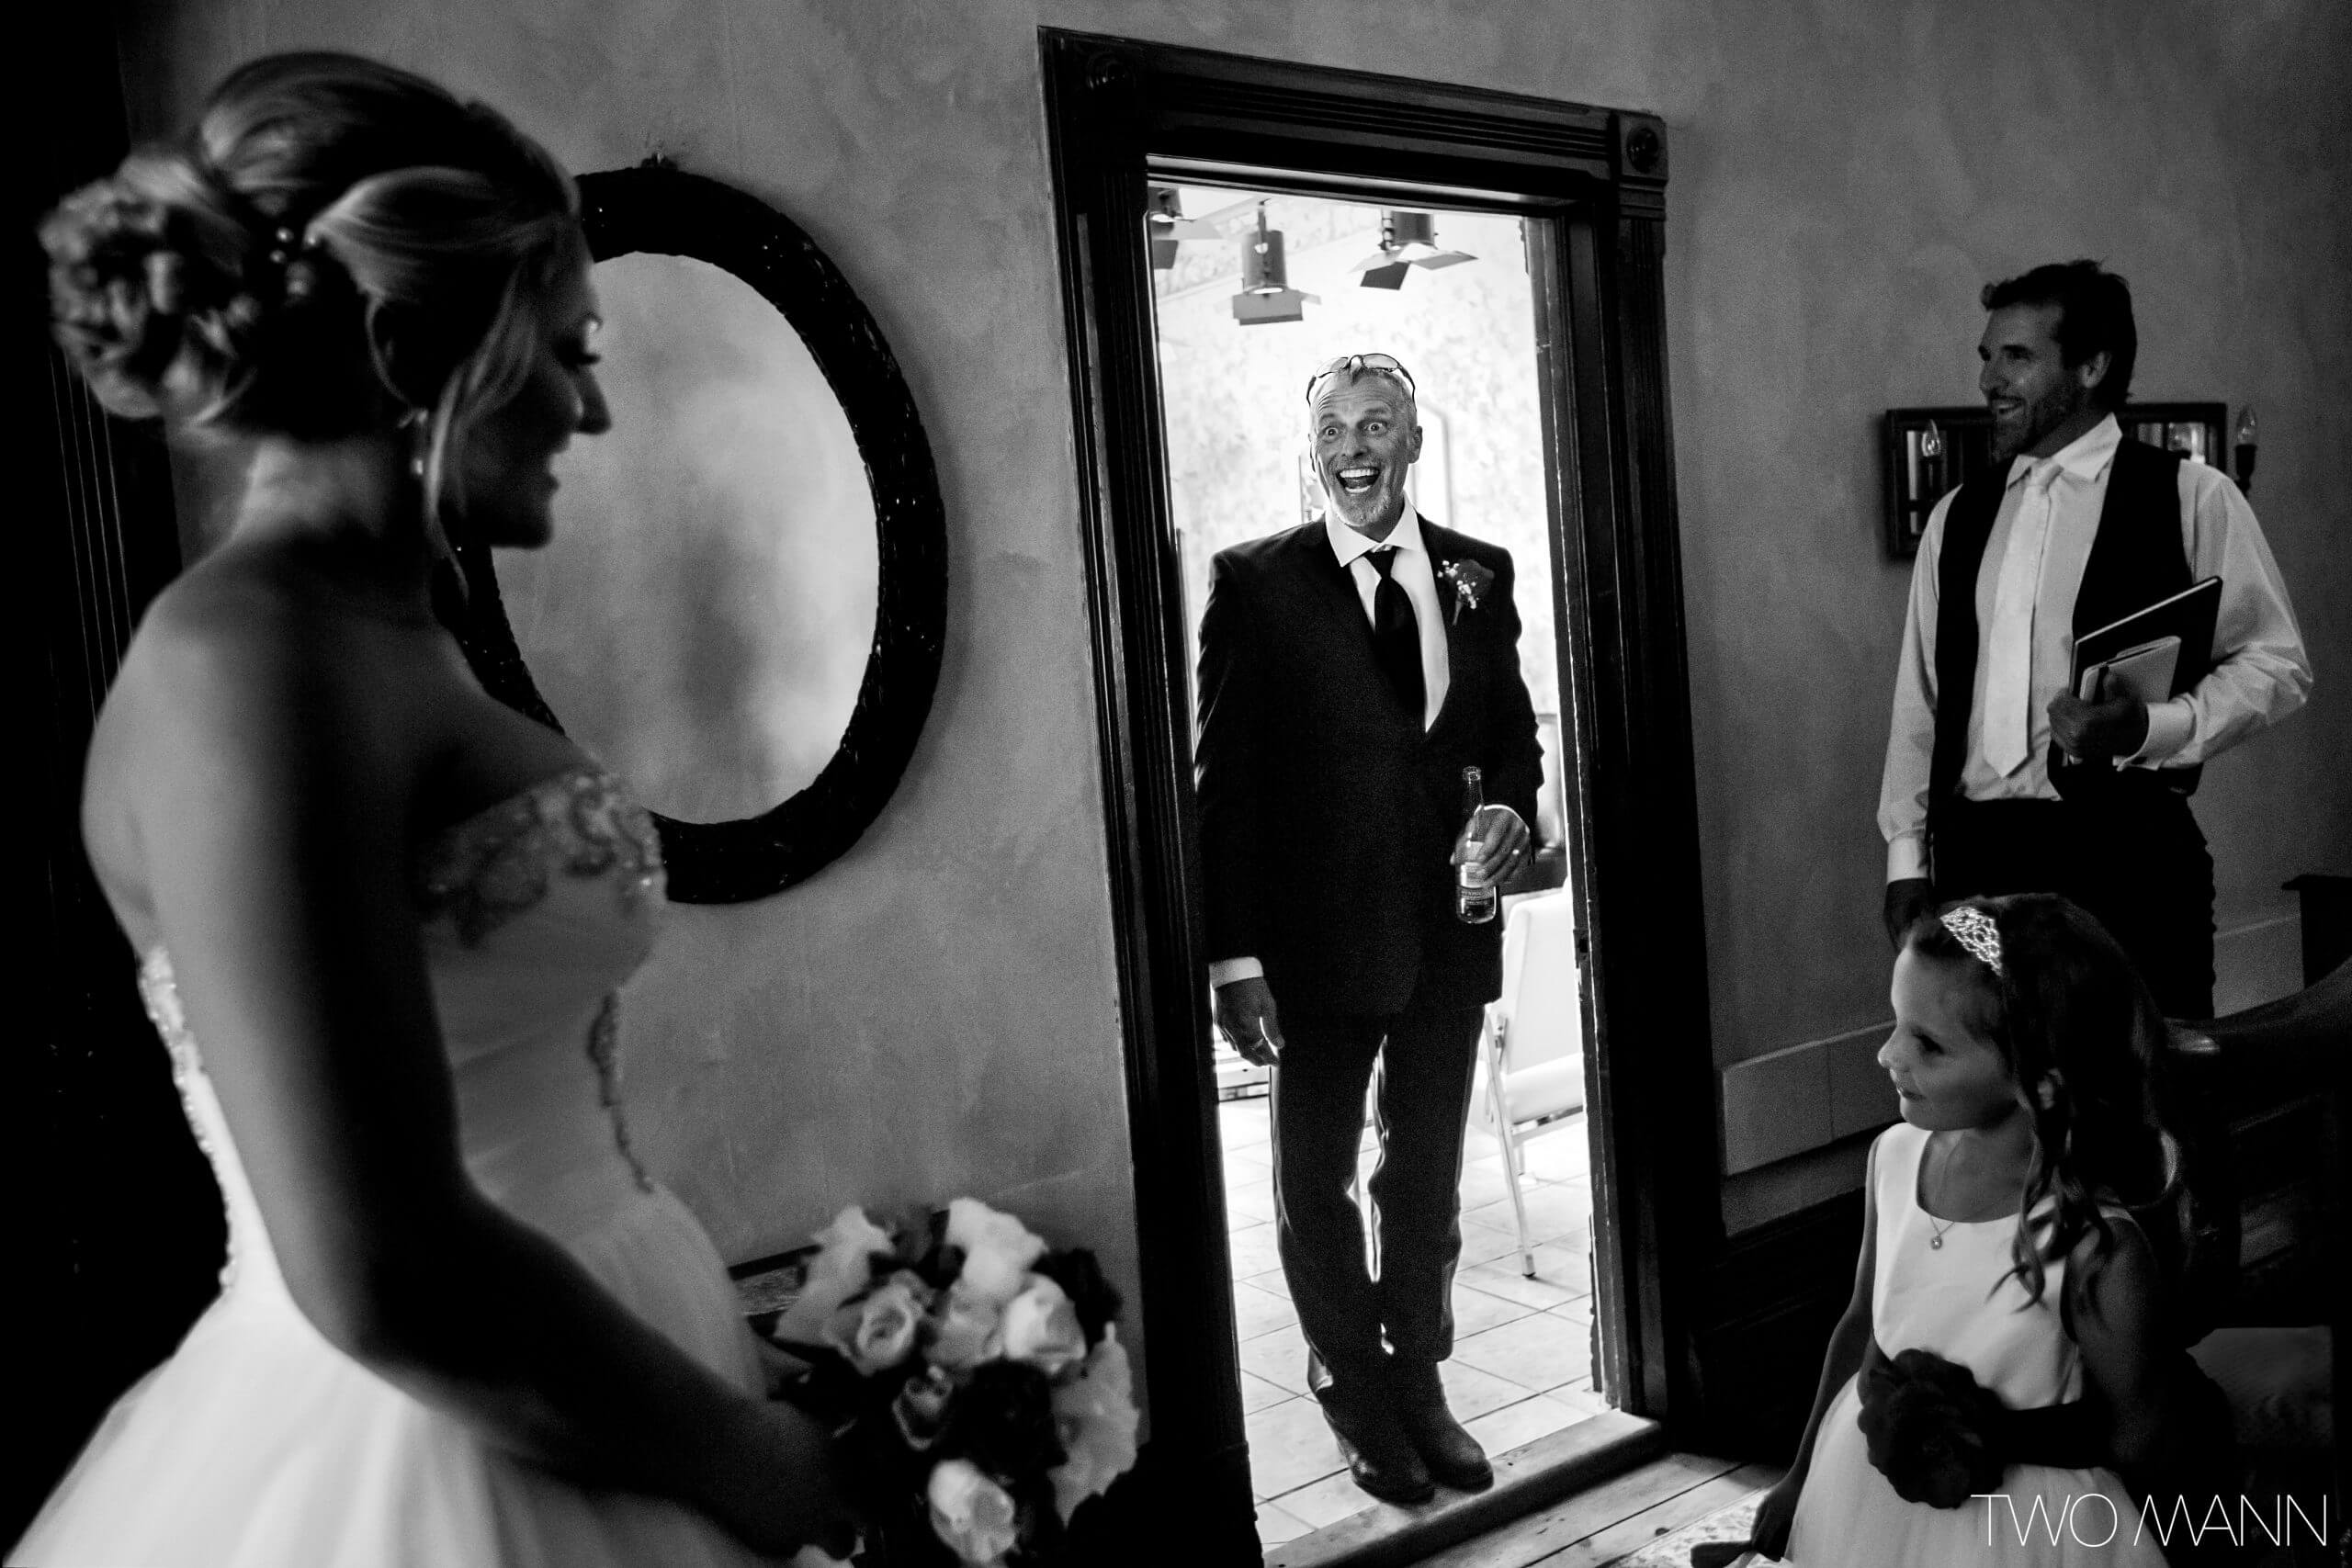 the father of a bride first seeing her daughter in her wedding dress